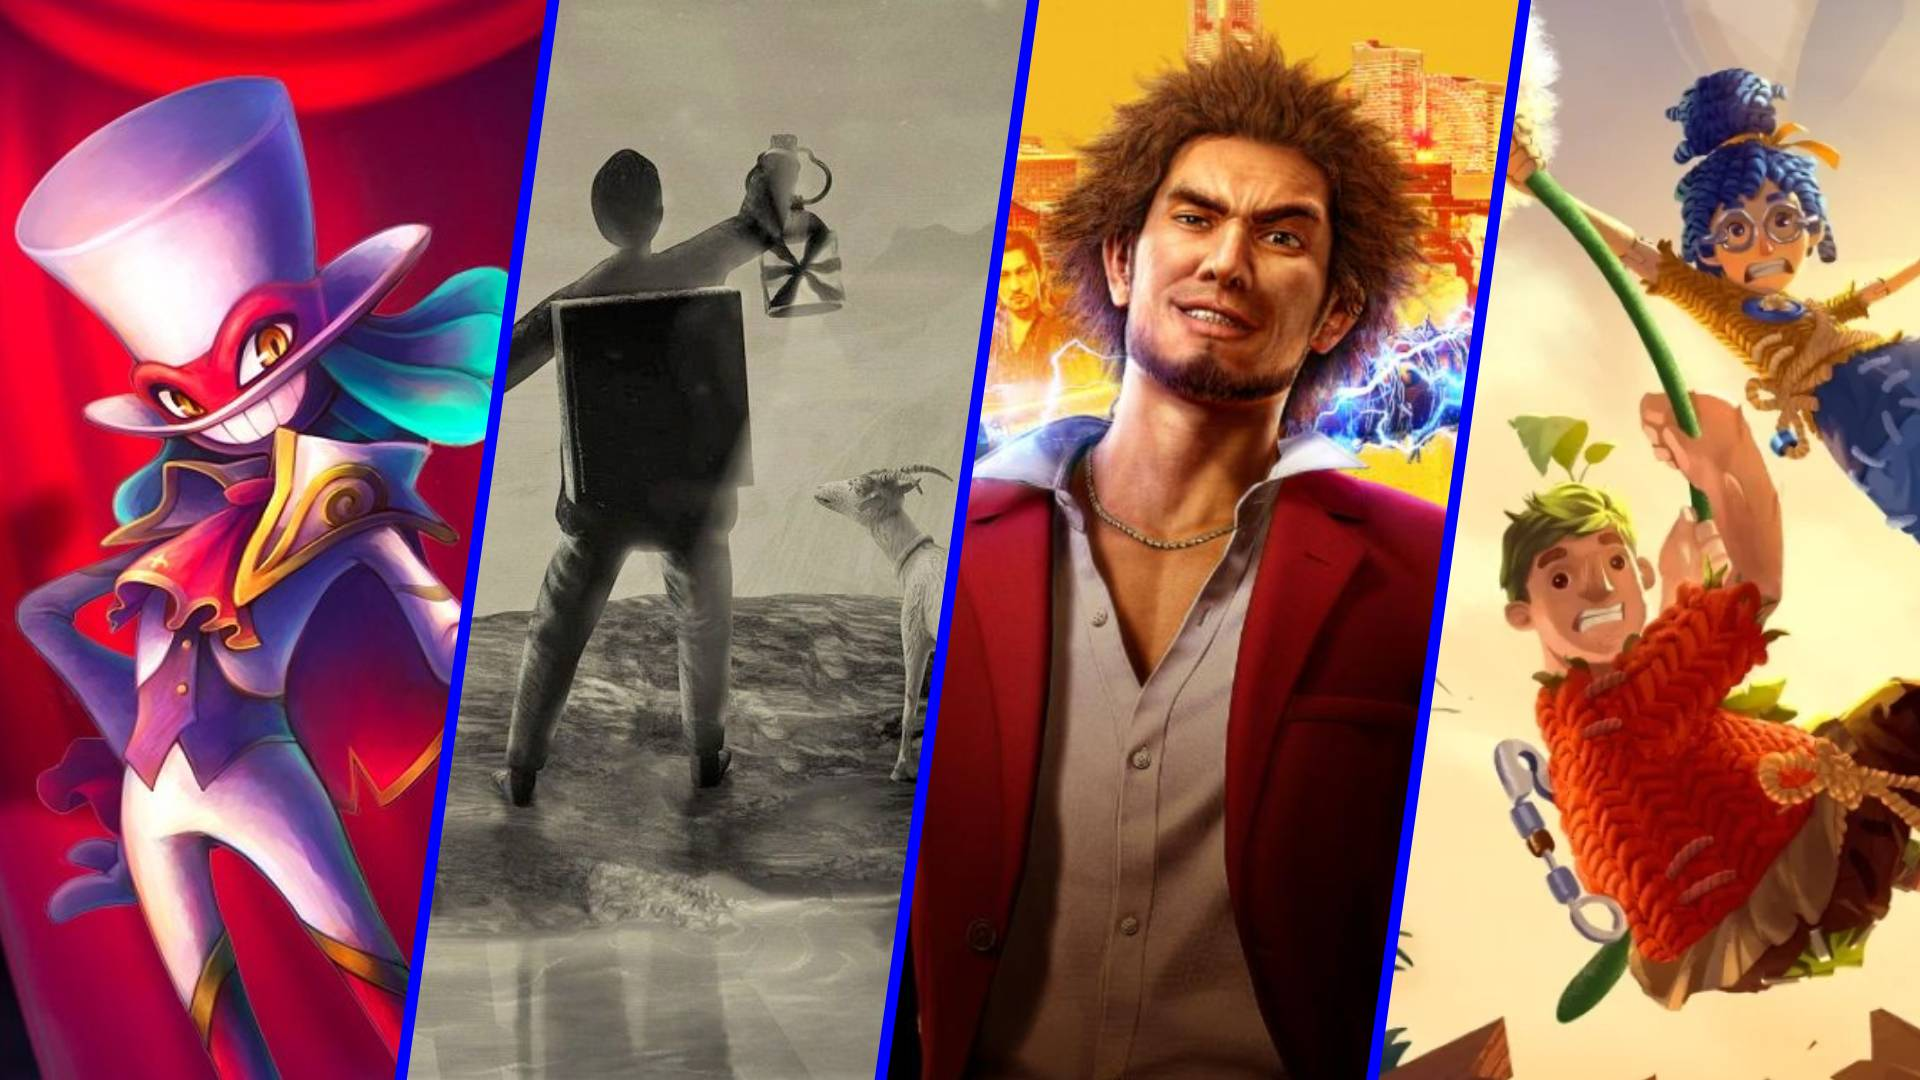 march-2021-ps5-ps4-psvr-dlc-video-game-release-dates